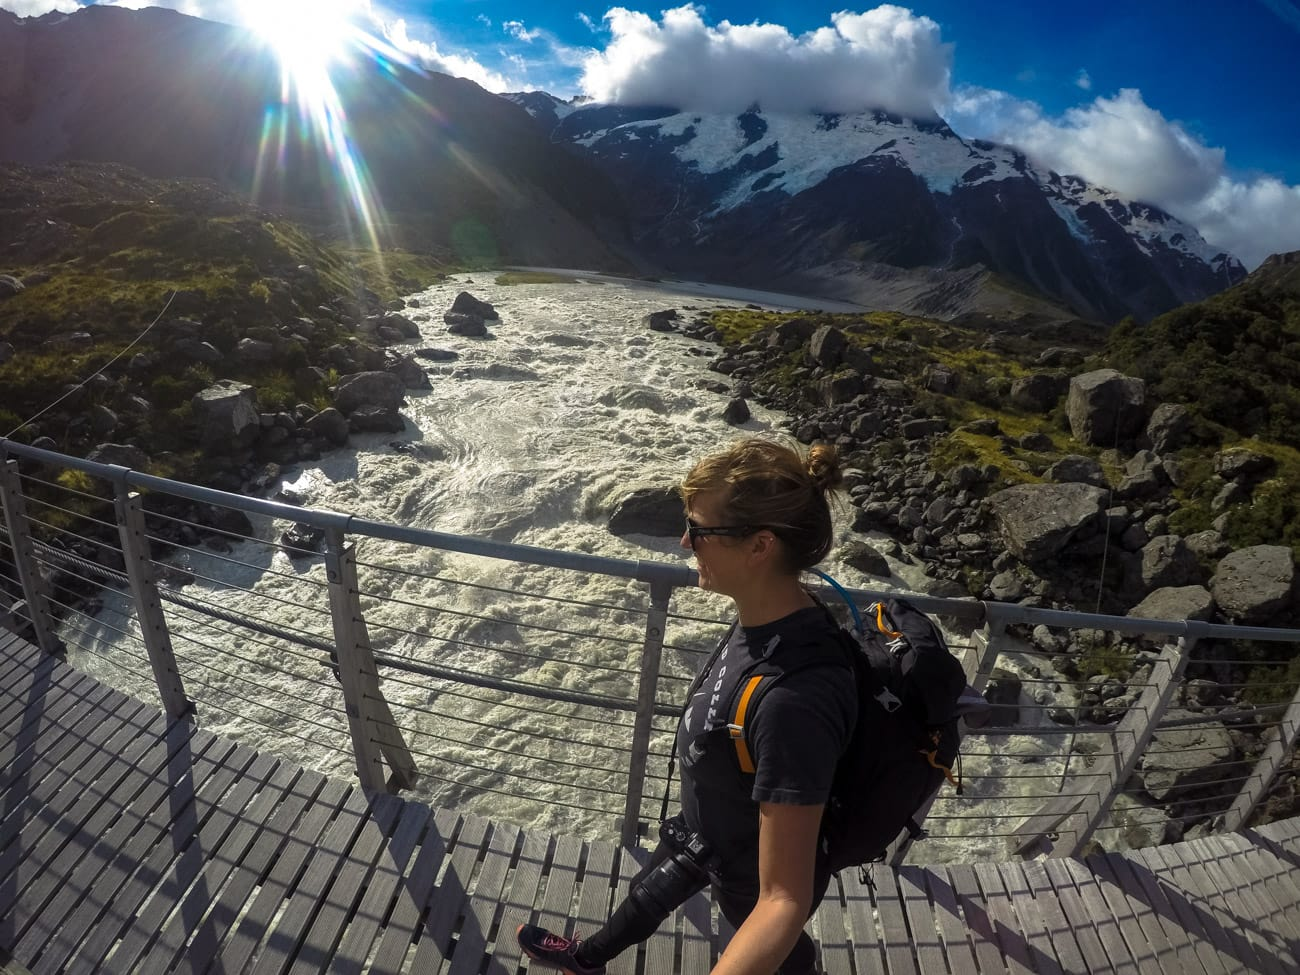 Hiking in the Hooker Valley of Mount Cook National Park in New Zealand